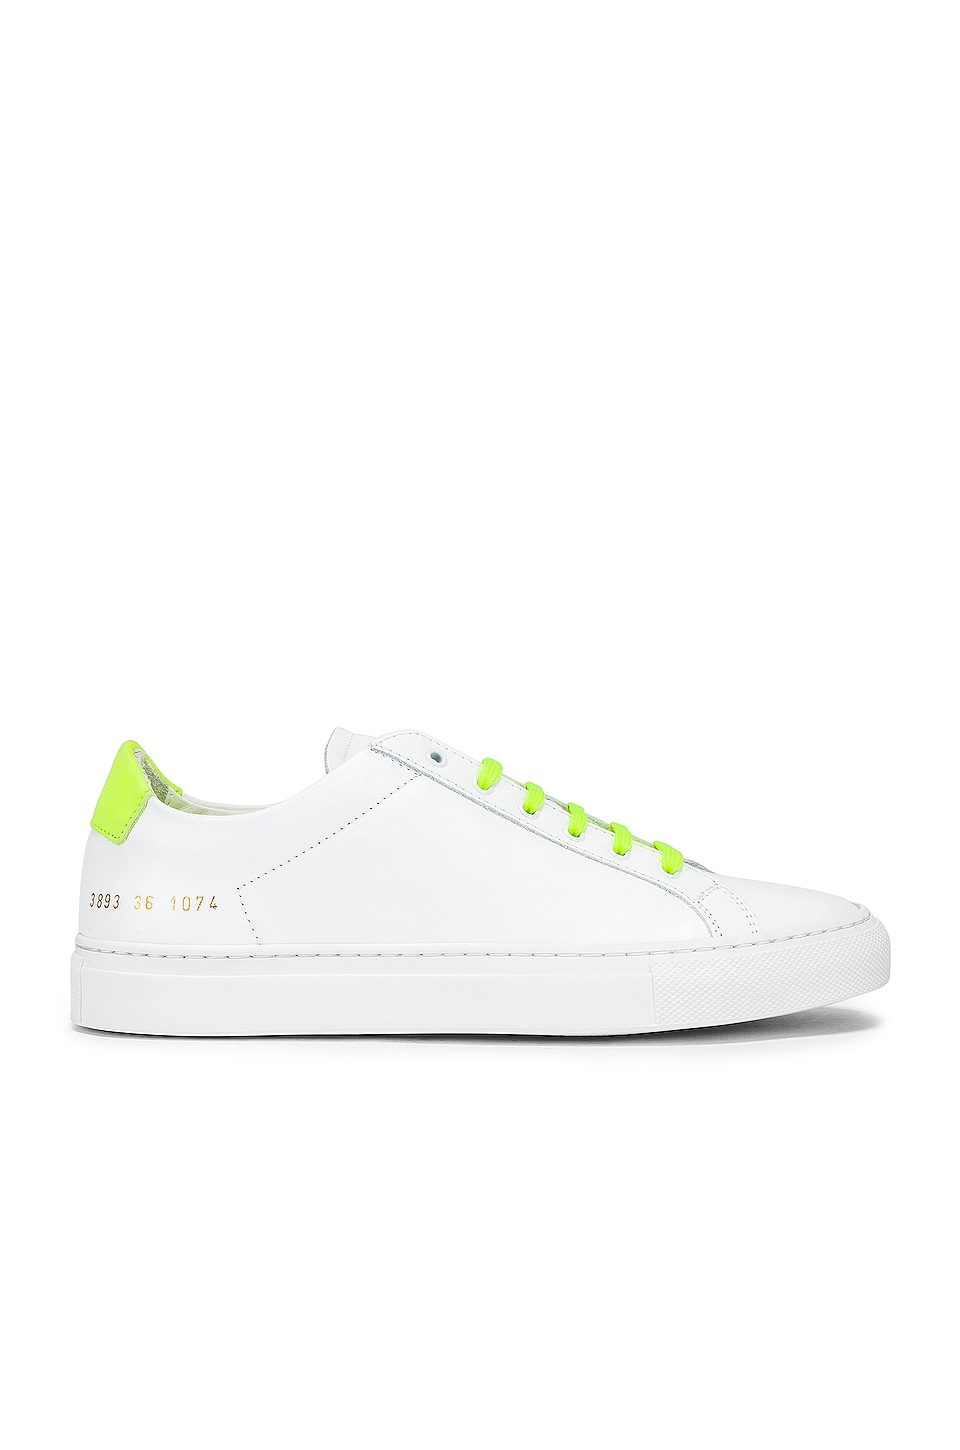 Common Projects Retro Low Fluo Sneaker in White & Yellow